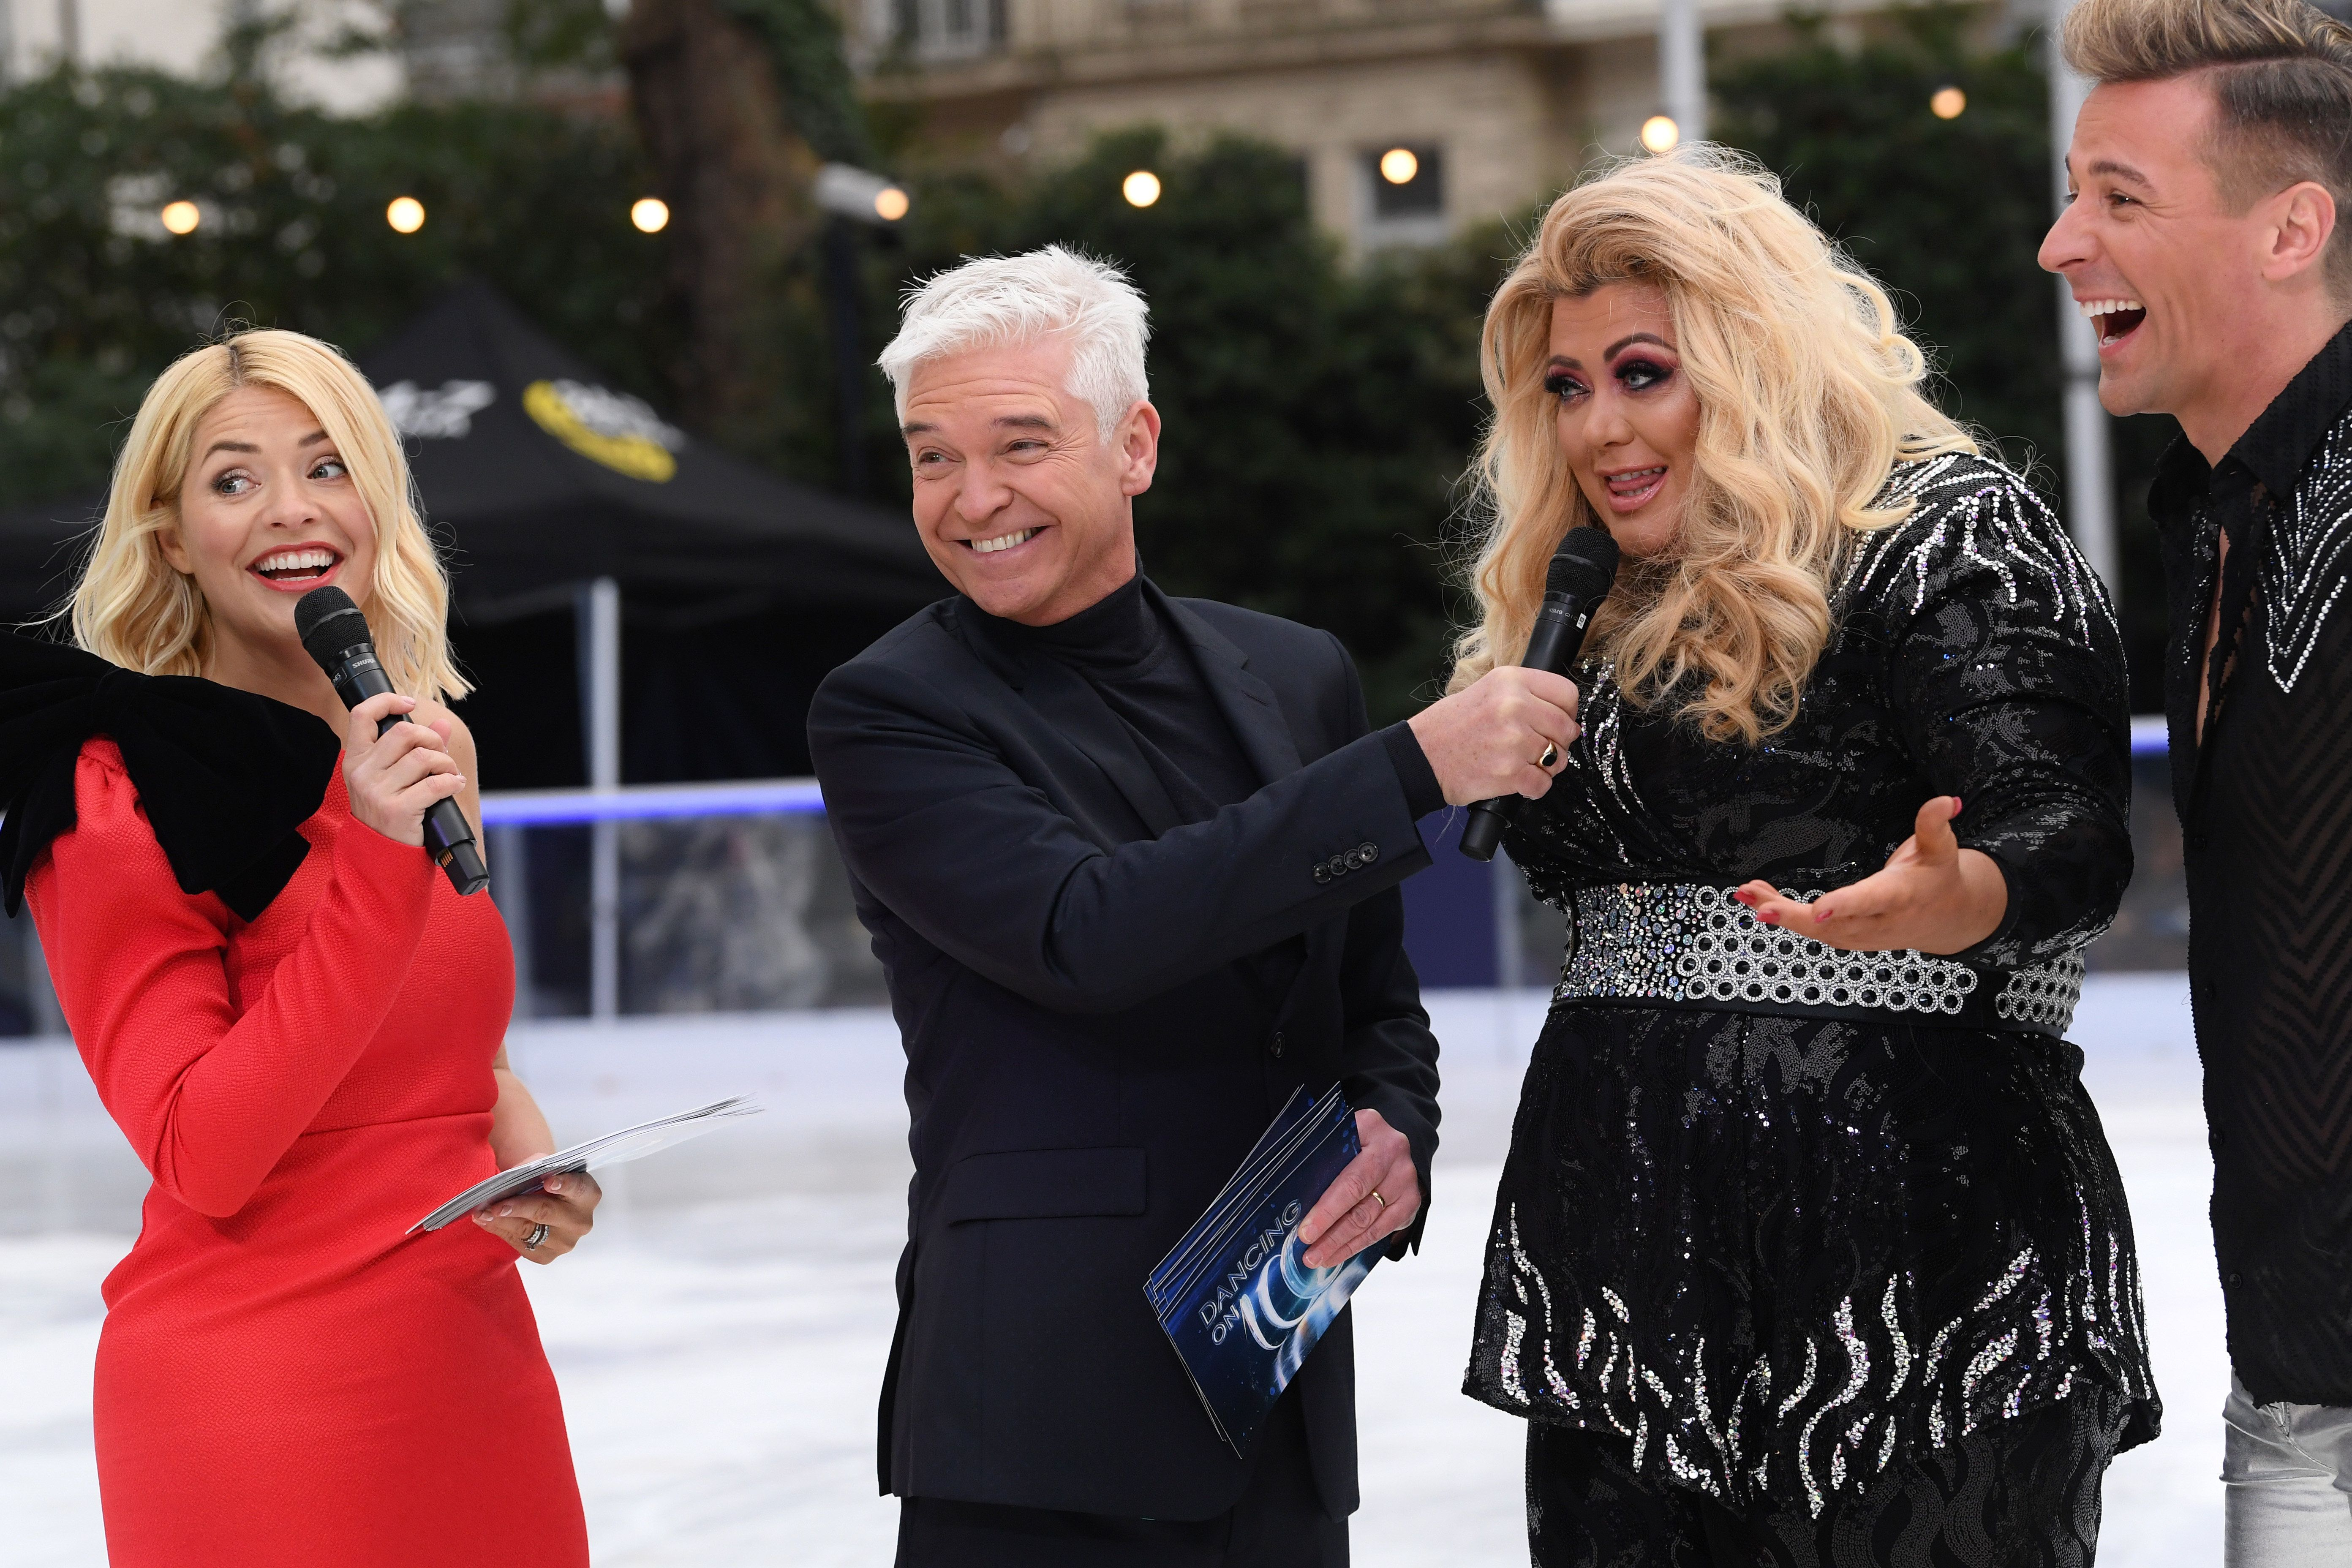 Gemma Collins Insists There's 'No Beef' With Holly Willoughby After 'Dancing On Ice'